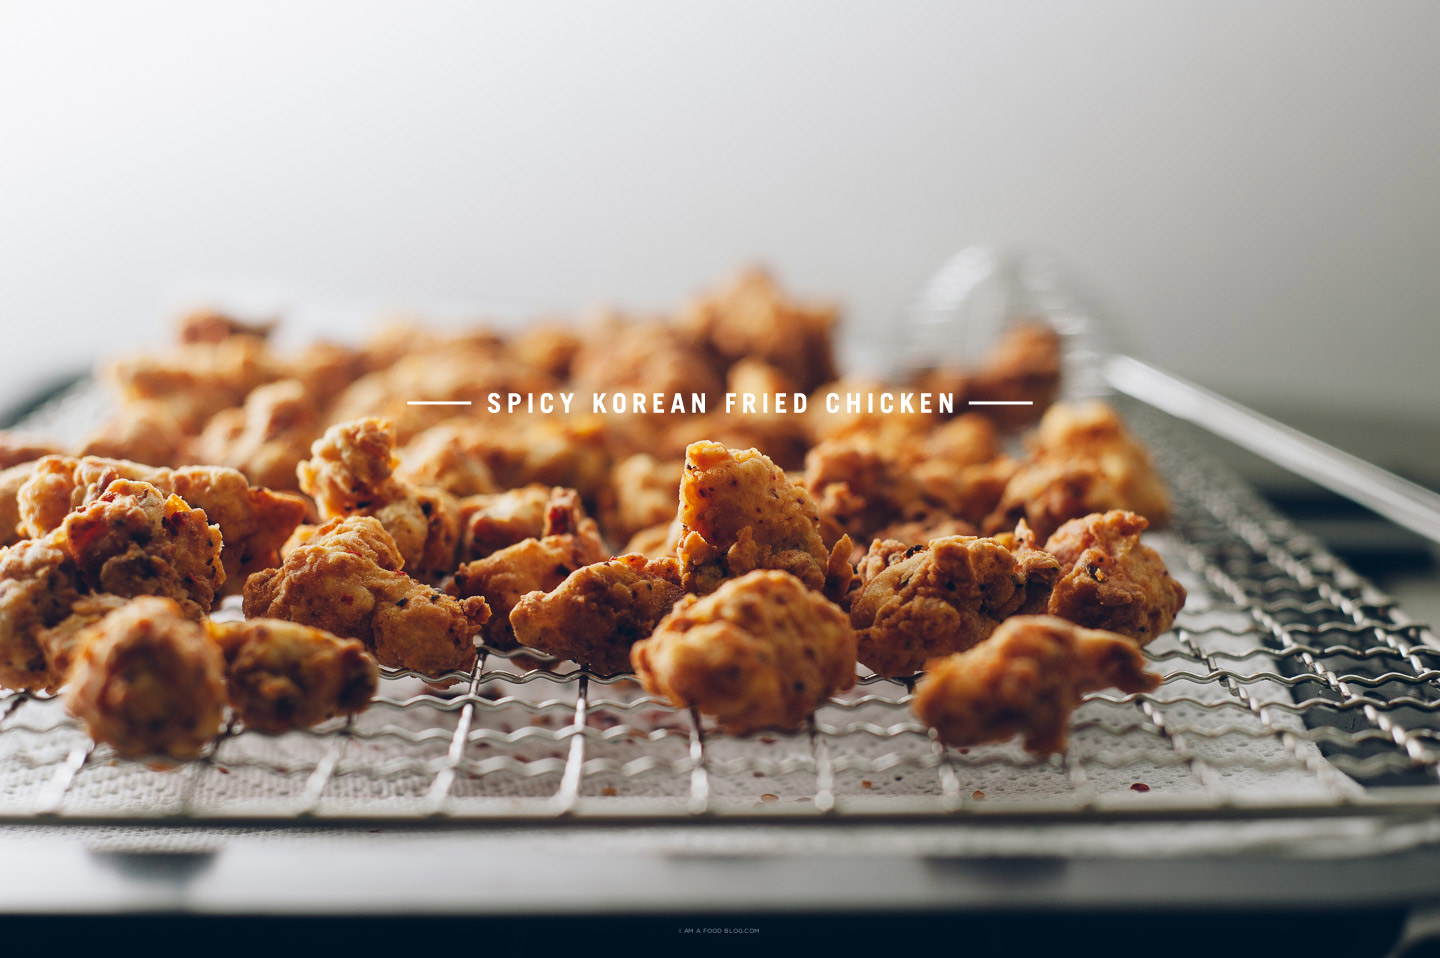 spicy popcorn chicken recipe - www.iamafoodblog.com